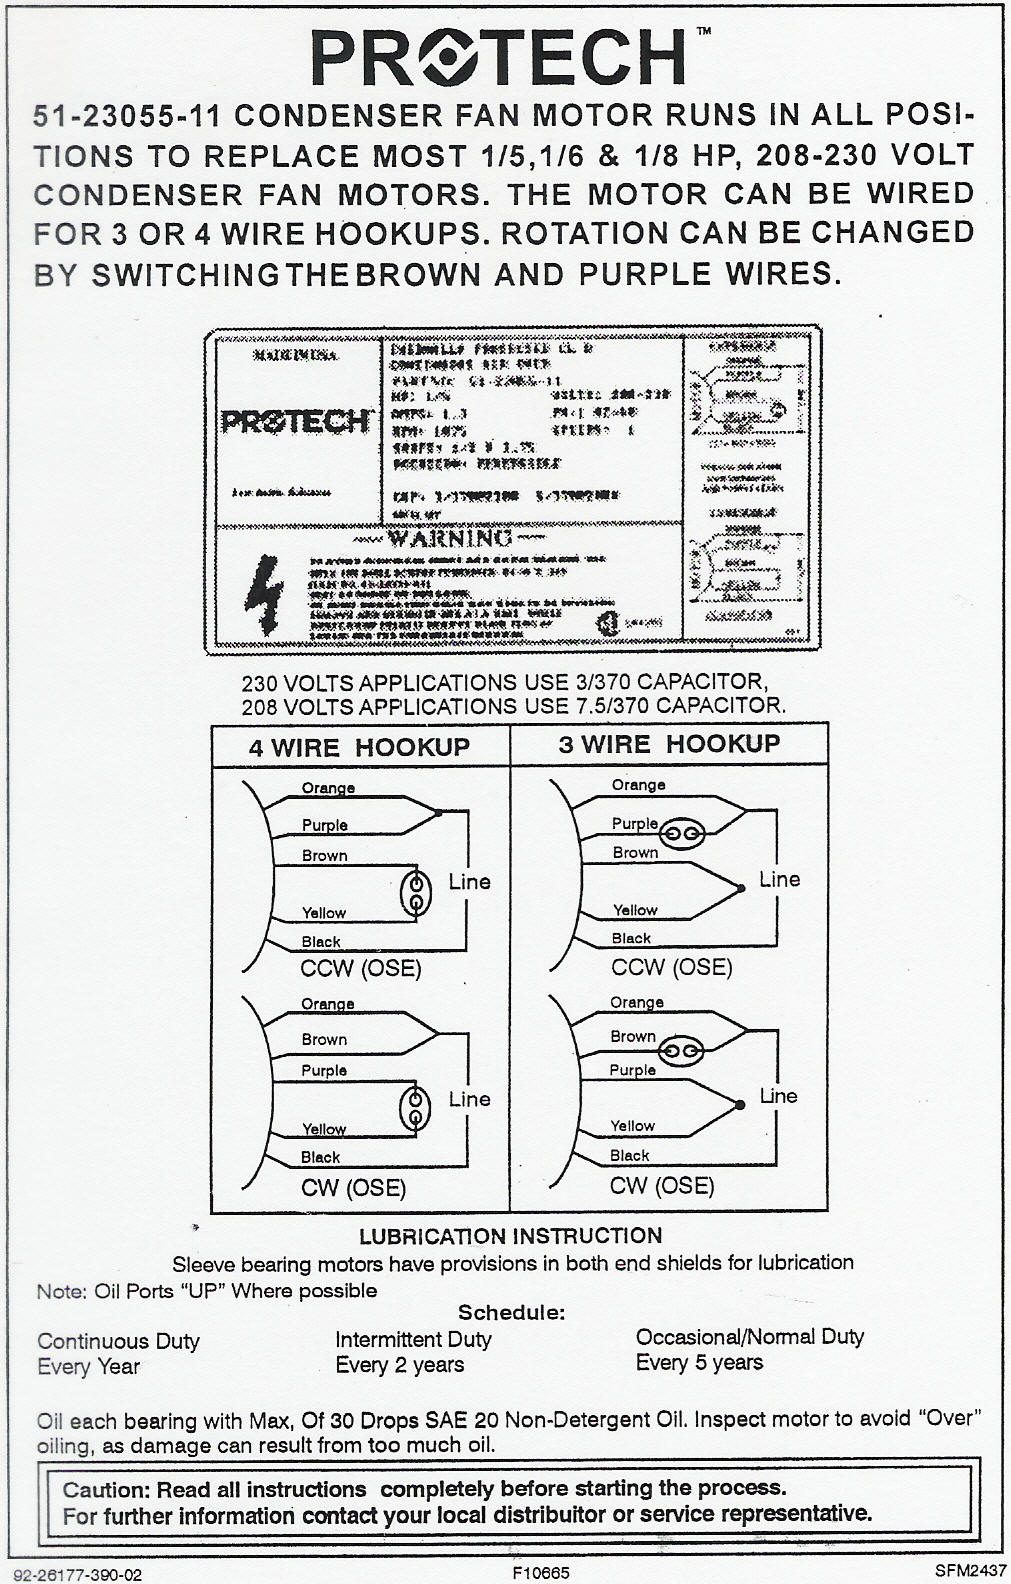 Rudd Hot Air Furnaces Wiring Diagrams Car Explained Hvac Blower Rheem Ruud Condenser Fan Motor 51 23055 11 Diagram Rh Myhvacparts Com Coleman Manufactured Home Furnace